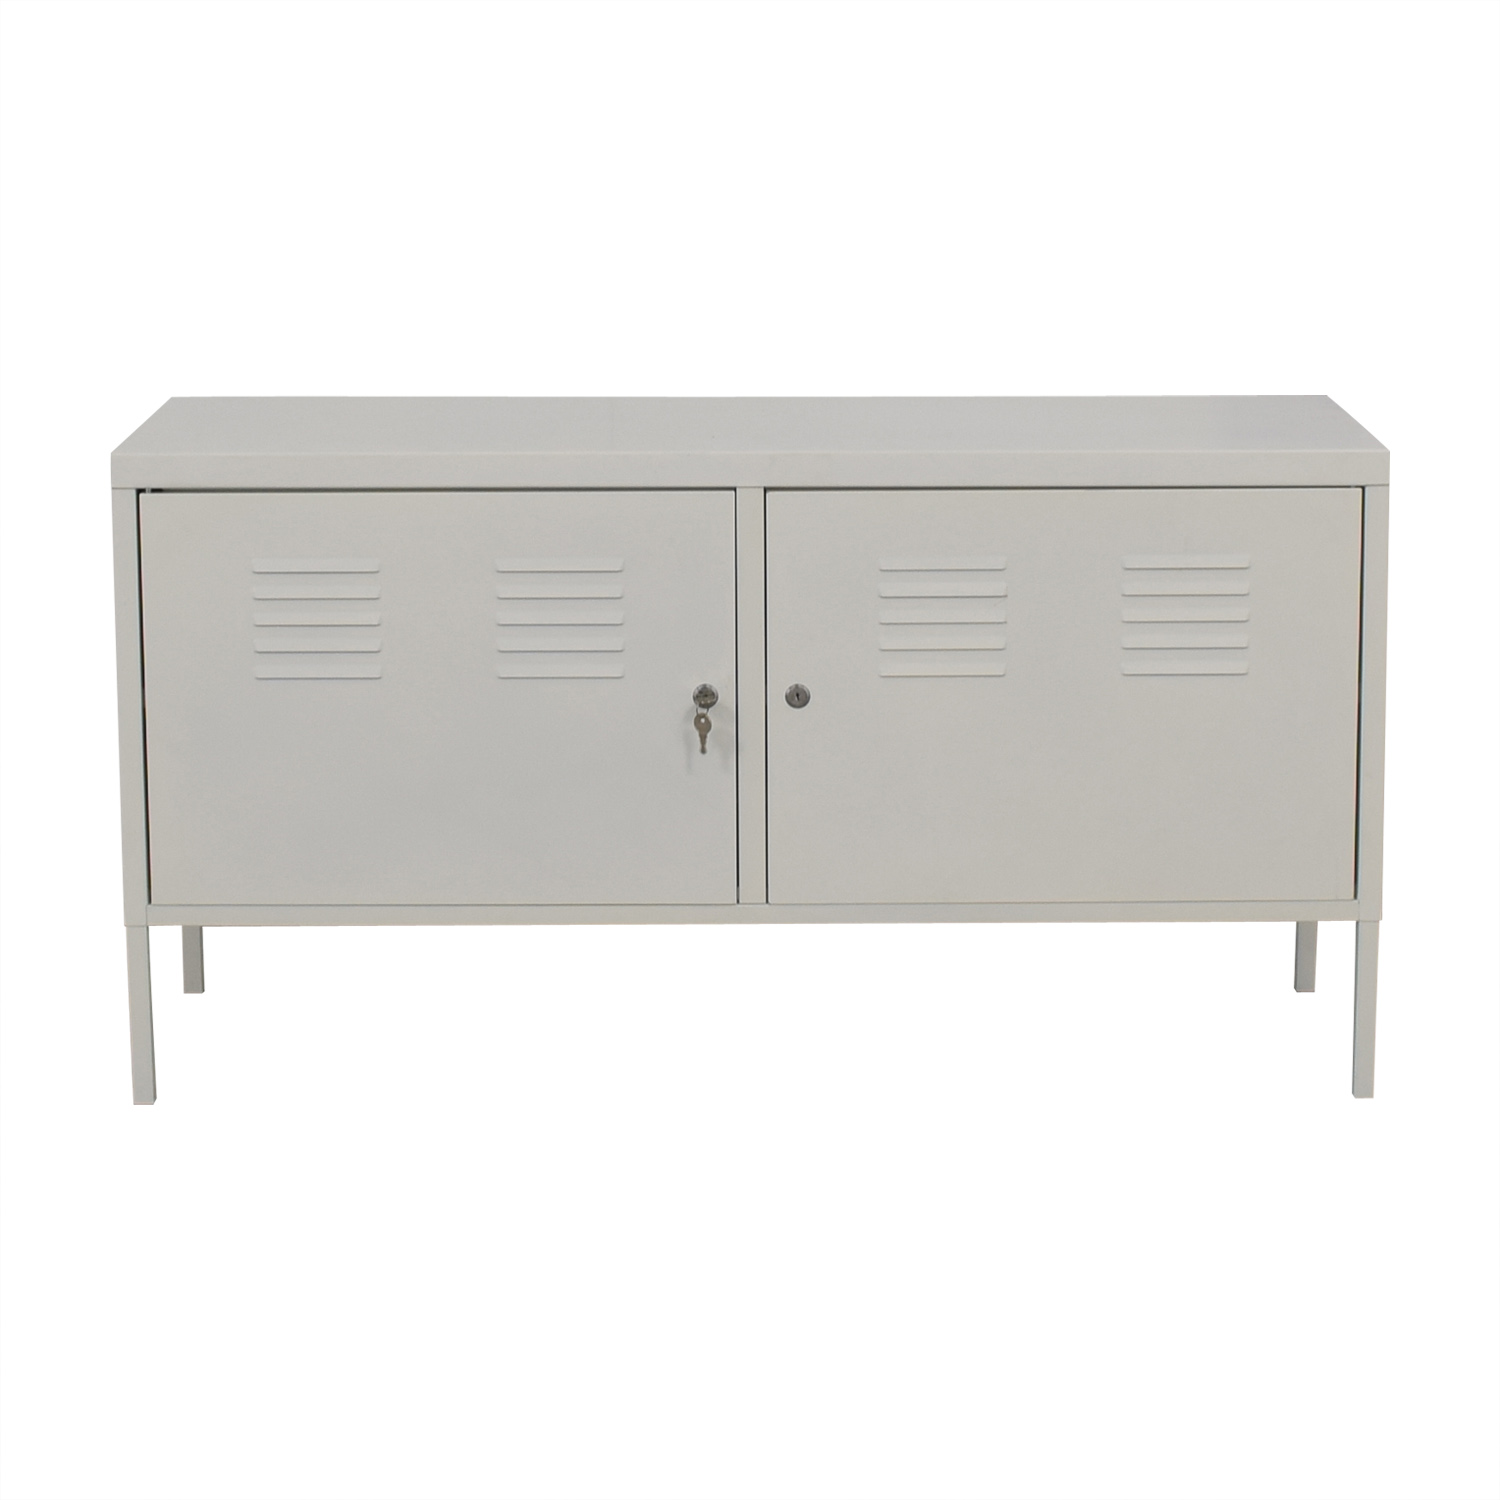 Ikea Storage Cabinets 68 Off Ikea Ikea White Metal Locker Cabinet Storage